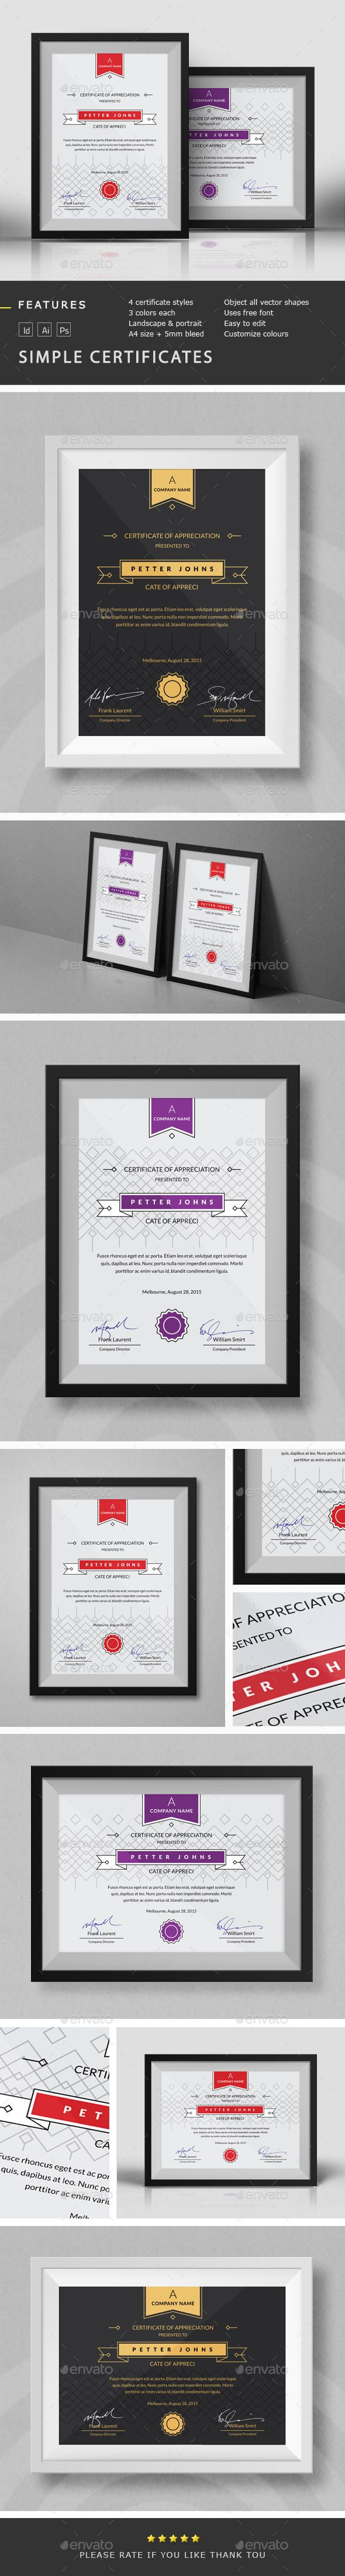 Simple Certificates Template | GraphicRiver